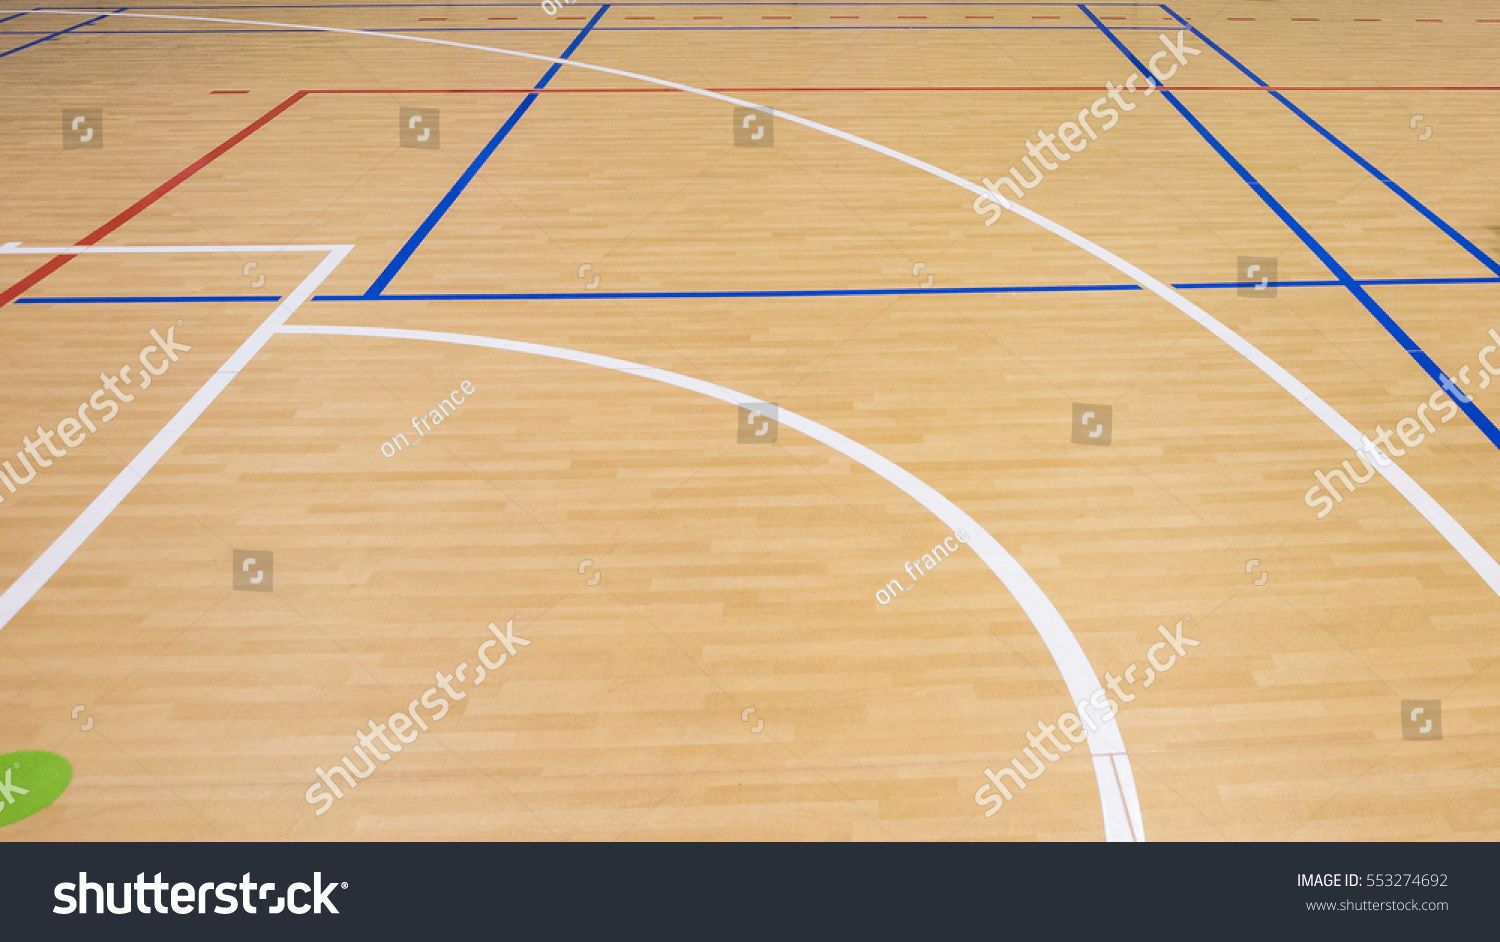 Wooden Floor Volleyball Basketball Badminton Court Royalty Free Image Photo In 2020 Badminton Court Badminton Volleyball